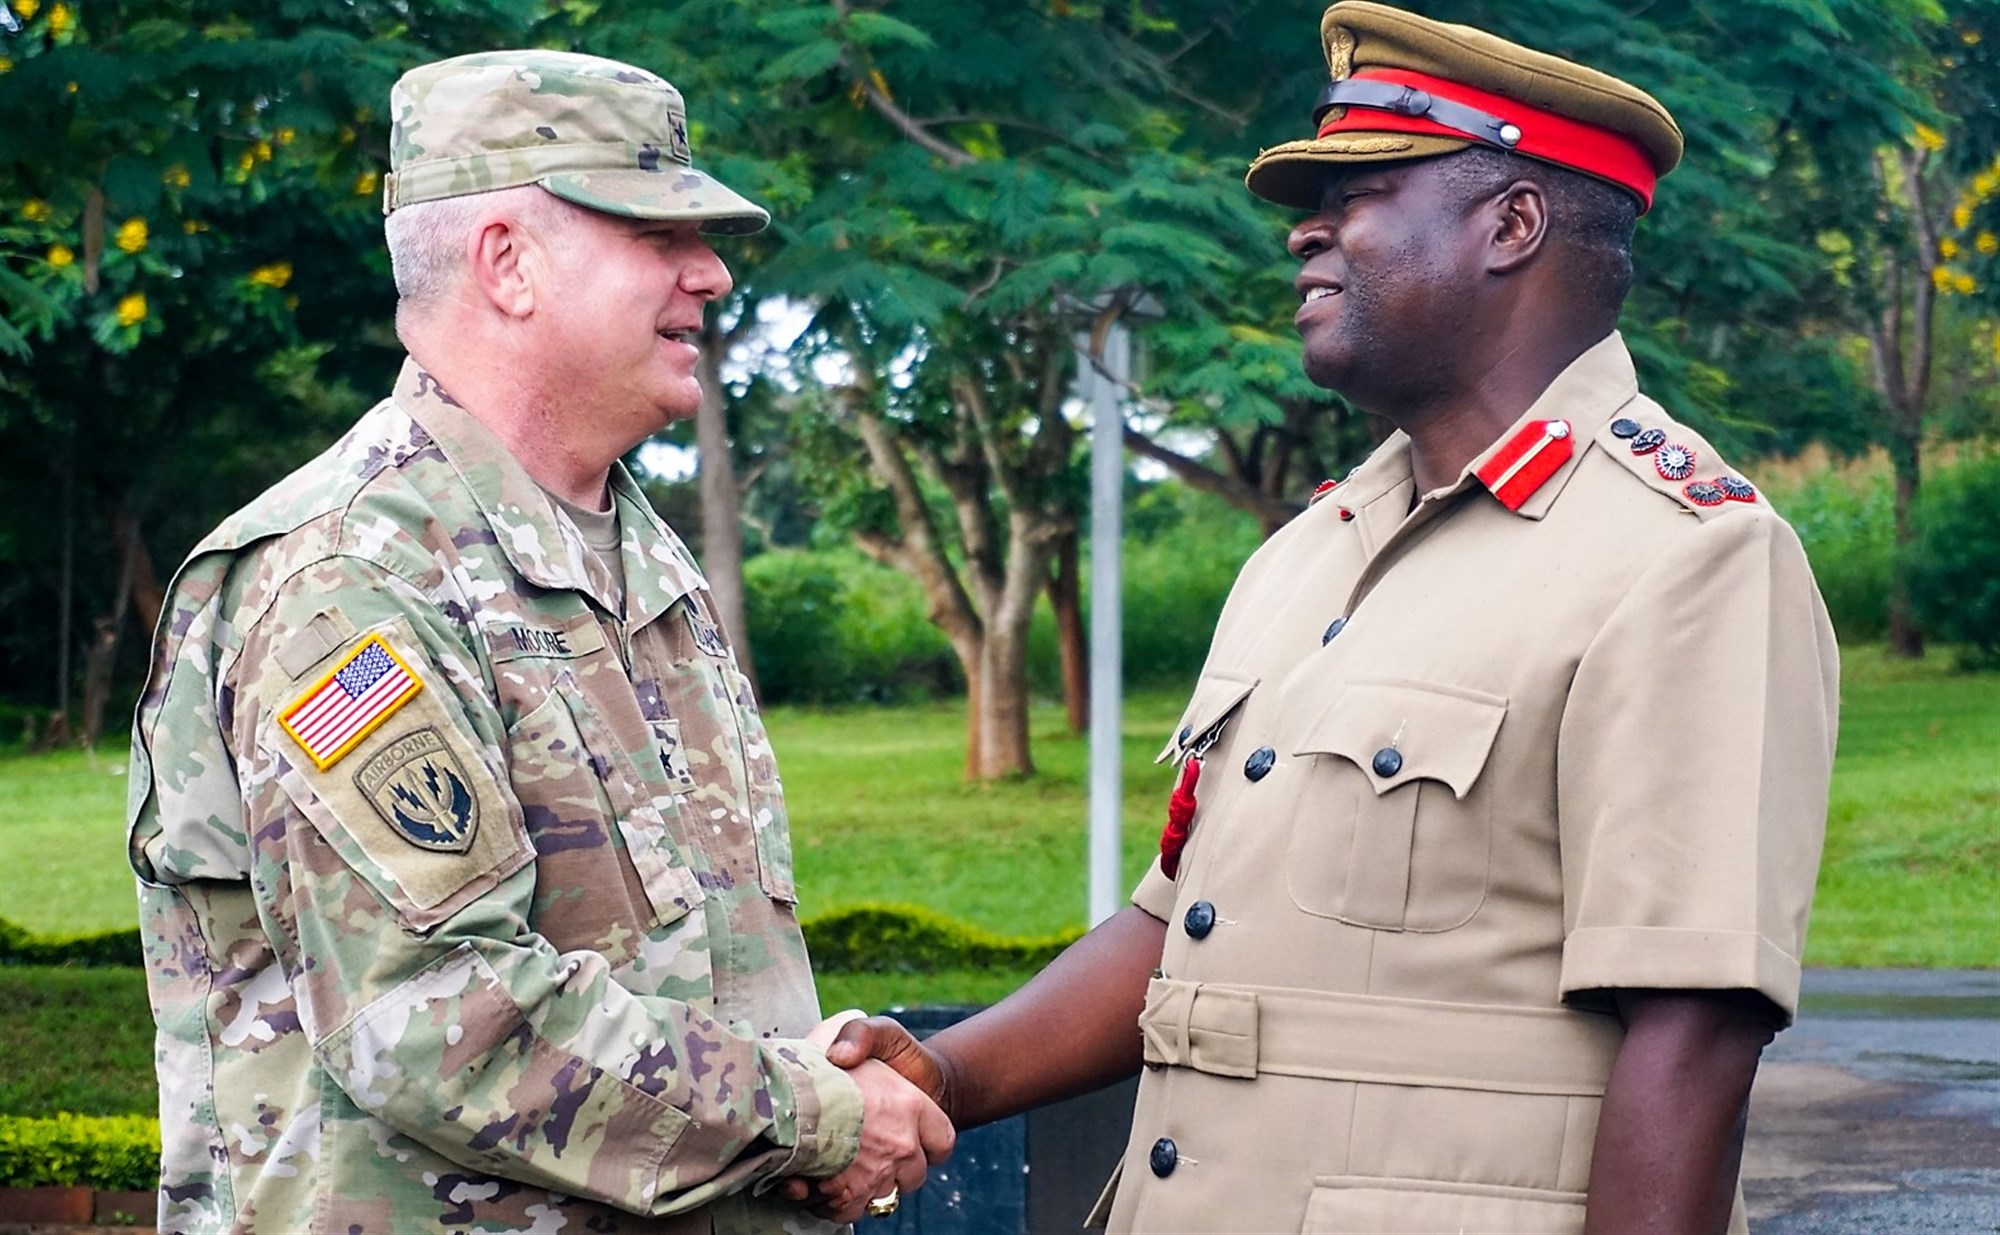 U.S. Army Brig. Gen. Kenneth Moore, U.S. Army Africa deputy commander, meets with Malawi Brig. Gen. Paul Phiri, Malawi Defense Force chief of training, at the Kumuzu Barracks, Lilongwe, Malawi, during the final planning event for the Africa Land Forces Summit 2017, March 27, 2017. ALFS is an annual, weeklong seminar bringing together land force chiefs from across Africa for candid dialog to discuss and develop cooperative solutions to regional and trans-regional challenges and threats. (Photo by Capt. Jason Welch, U.S. Army Africa Public Affairs/Released)